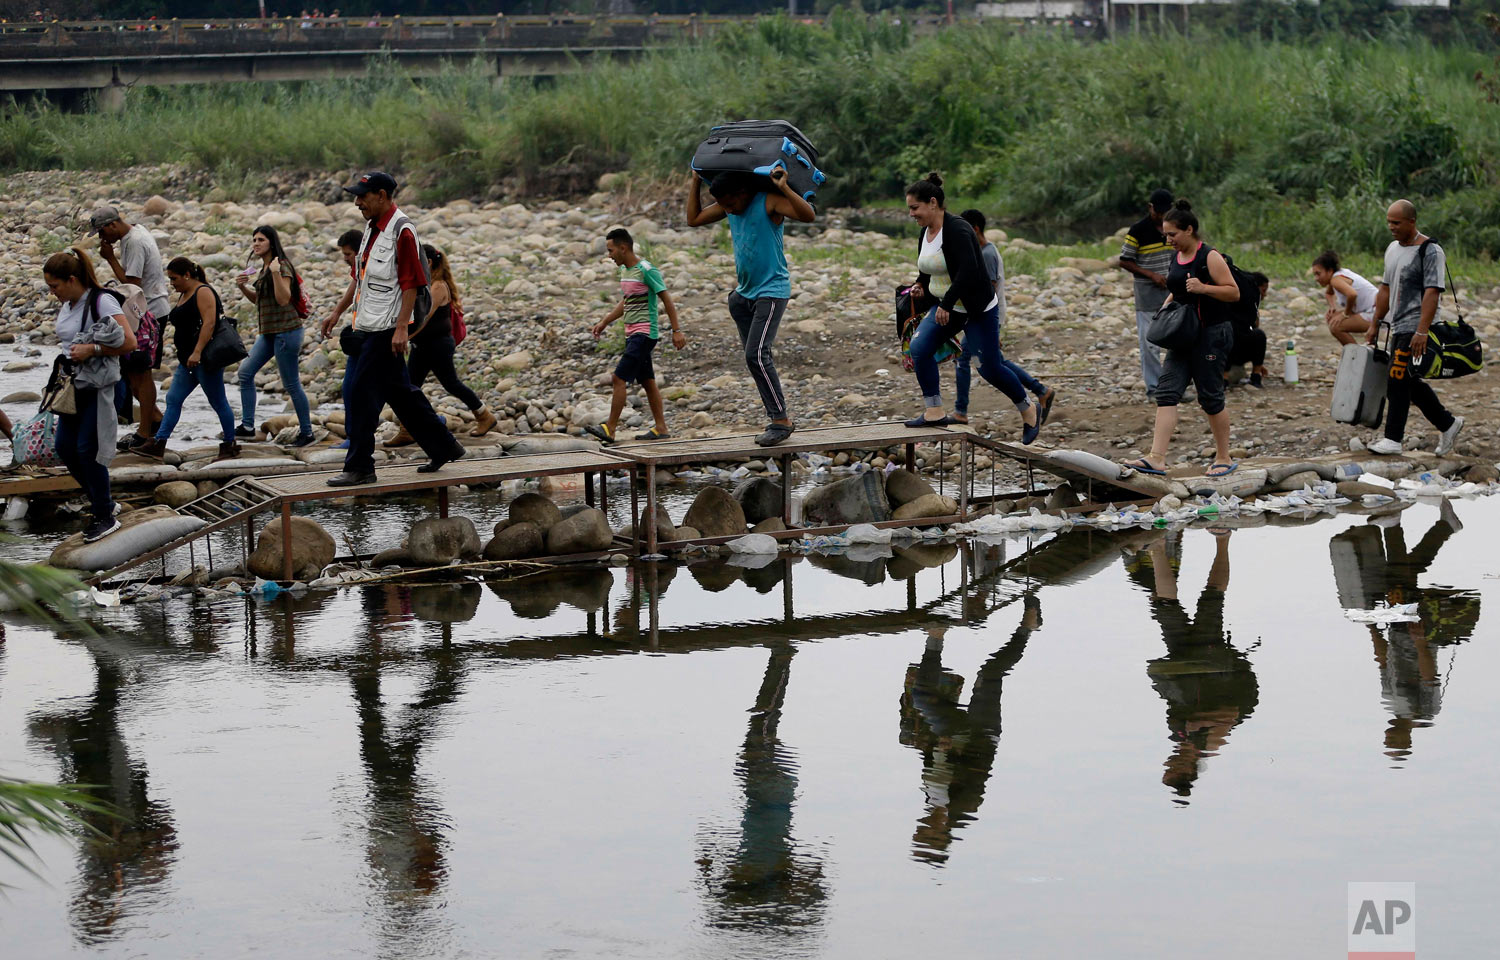 Venezuelans cross illegally into Colombia near the Simon Bolivar International Bridge, behind, top left, which is partially closed by Venezuelan authorities who are only permitting students, seniors and the sick to cross, seen from La Parada near Cucuta, Colombia, April 14, 2019. U.S. (AP Photo/Fernando Vergara)